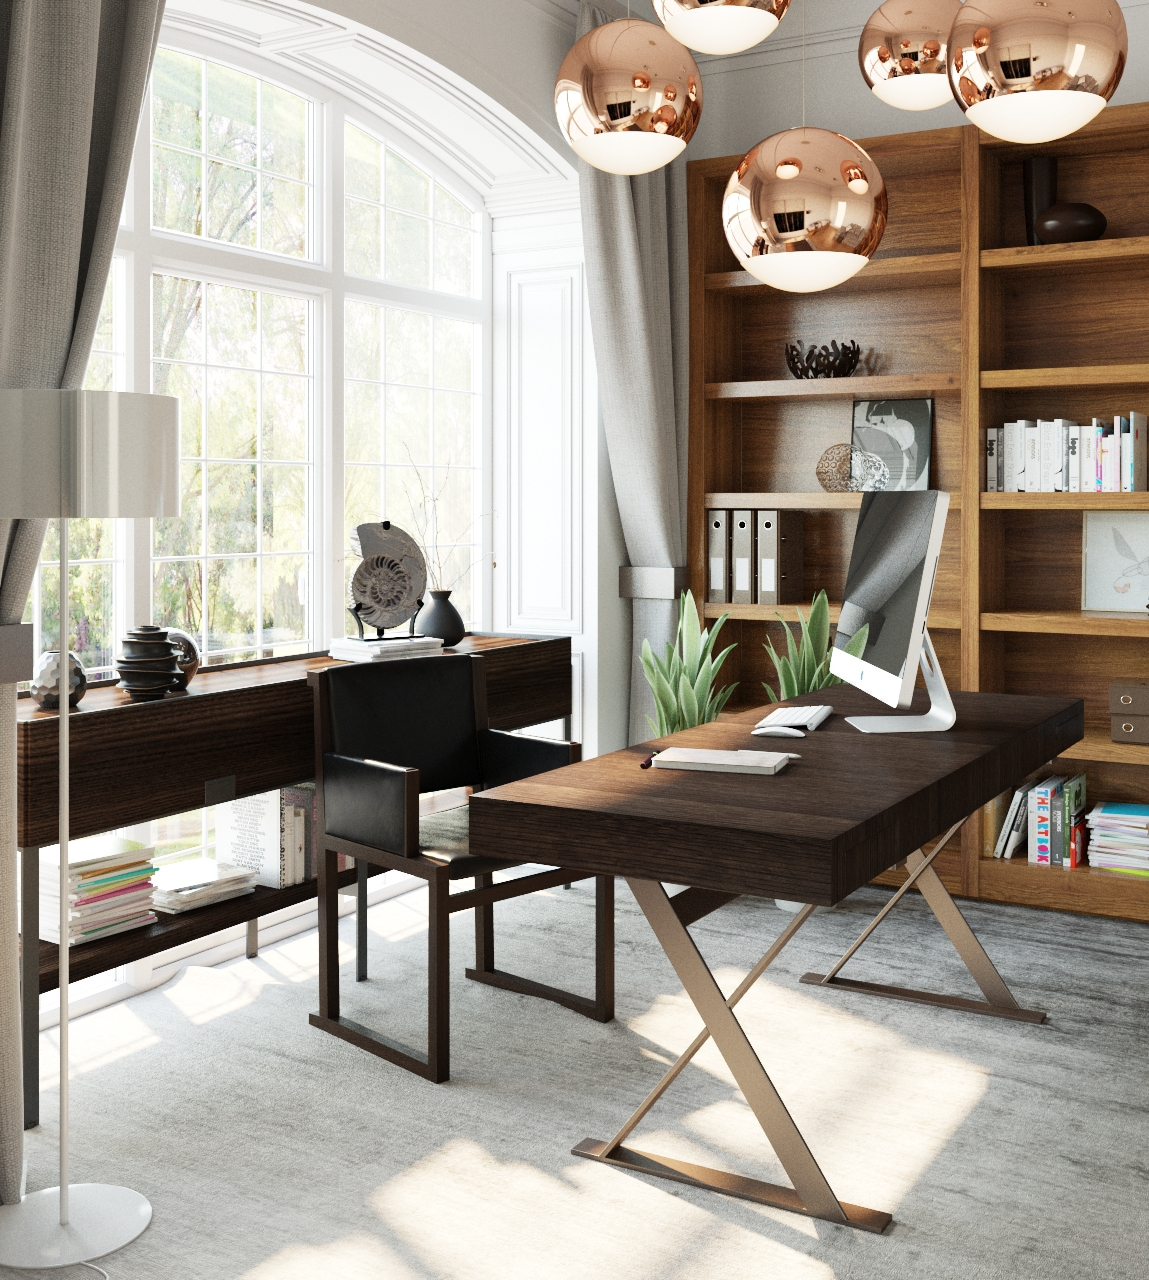 20 Of The Best Modern Home Office Ideas: 35 Modern Home Office Design Ideas